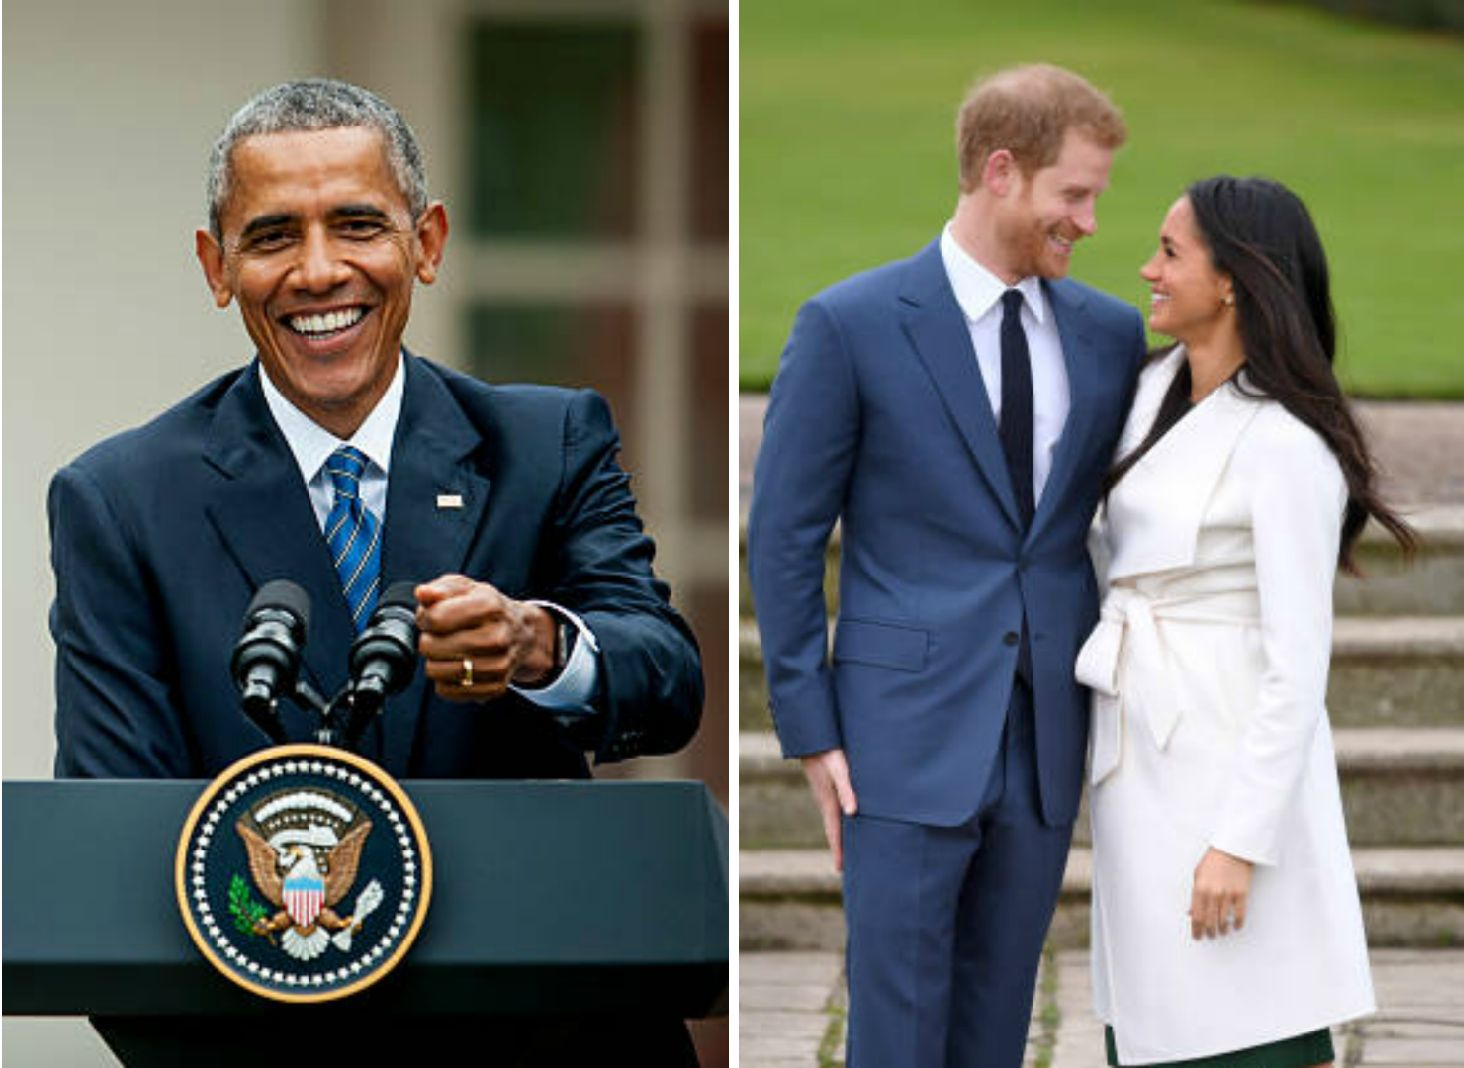 Barack Obama Congratulates Prince Harry And Meghan Markle On